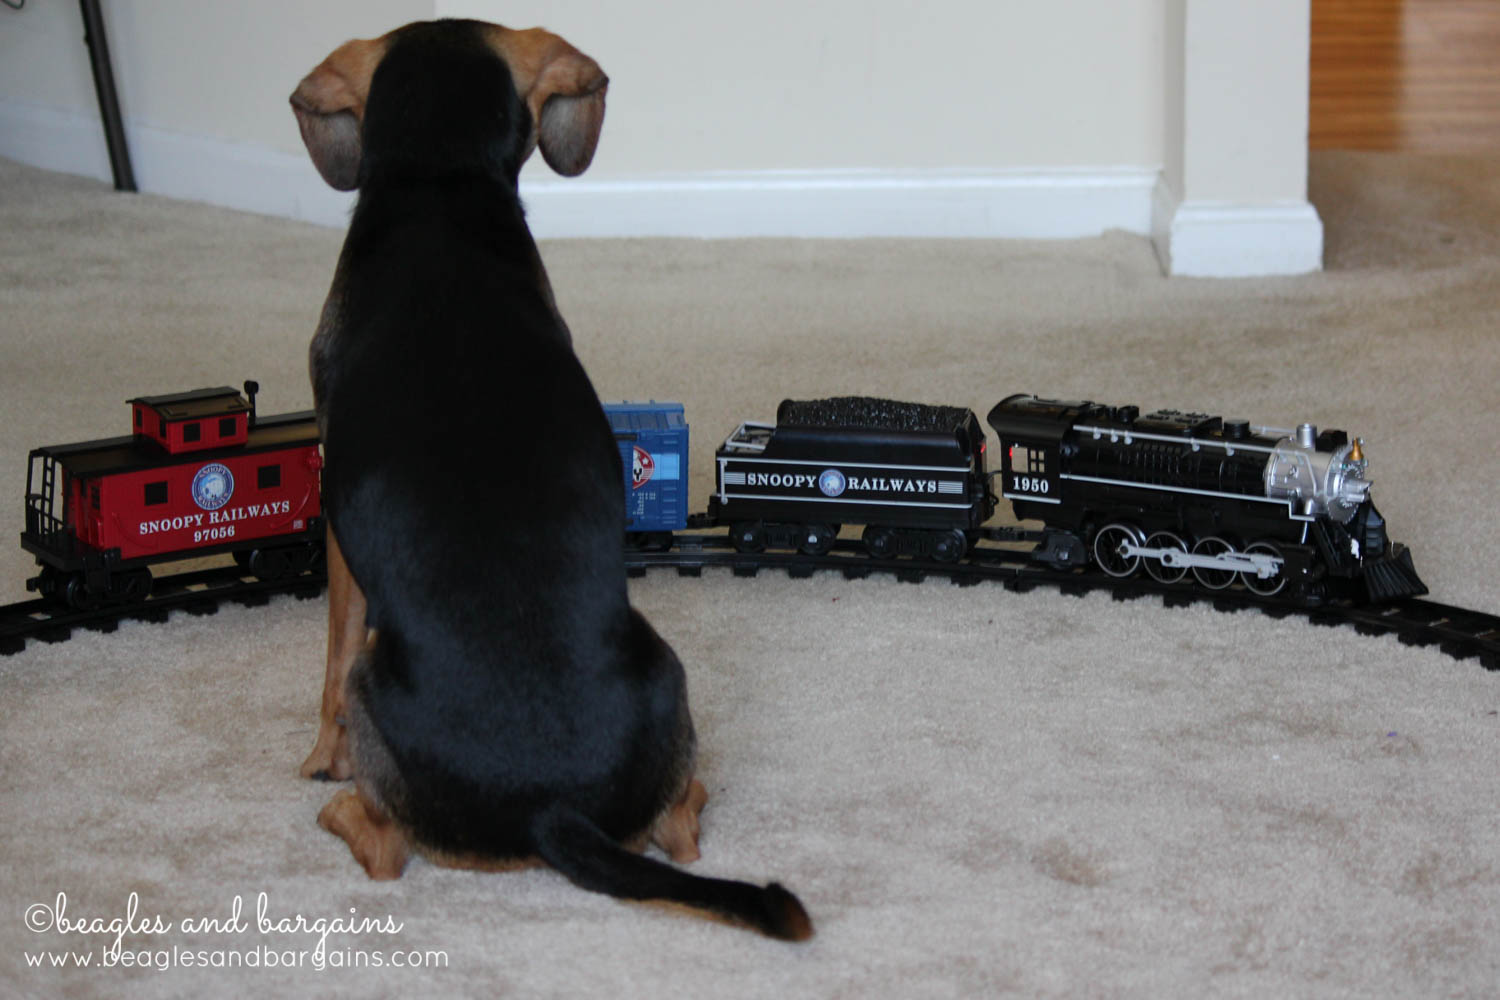 Luna observes the Snoopy Railroad Train from Lionel